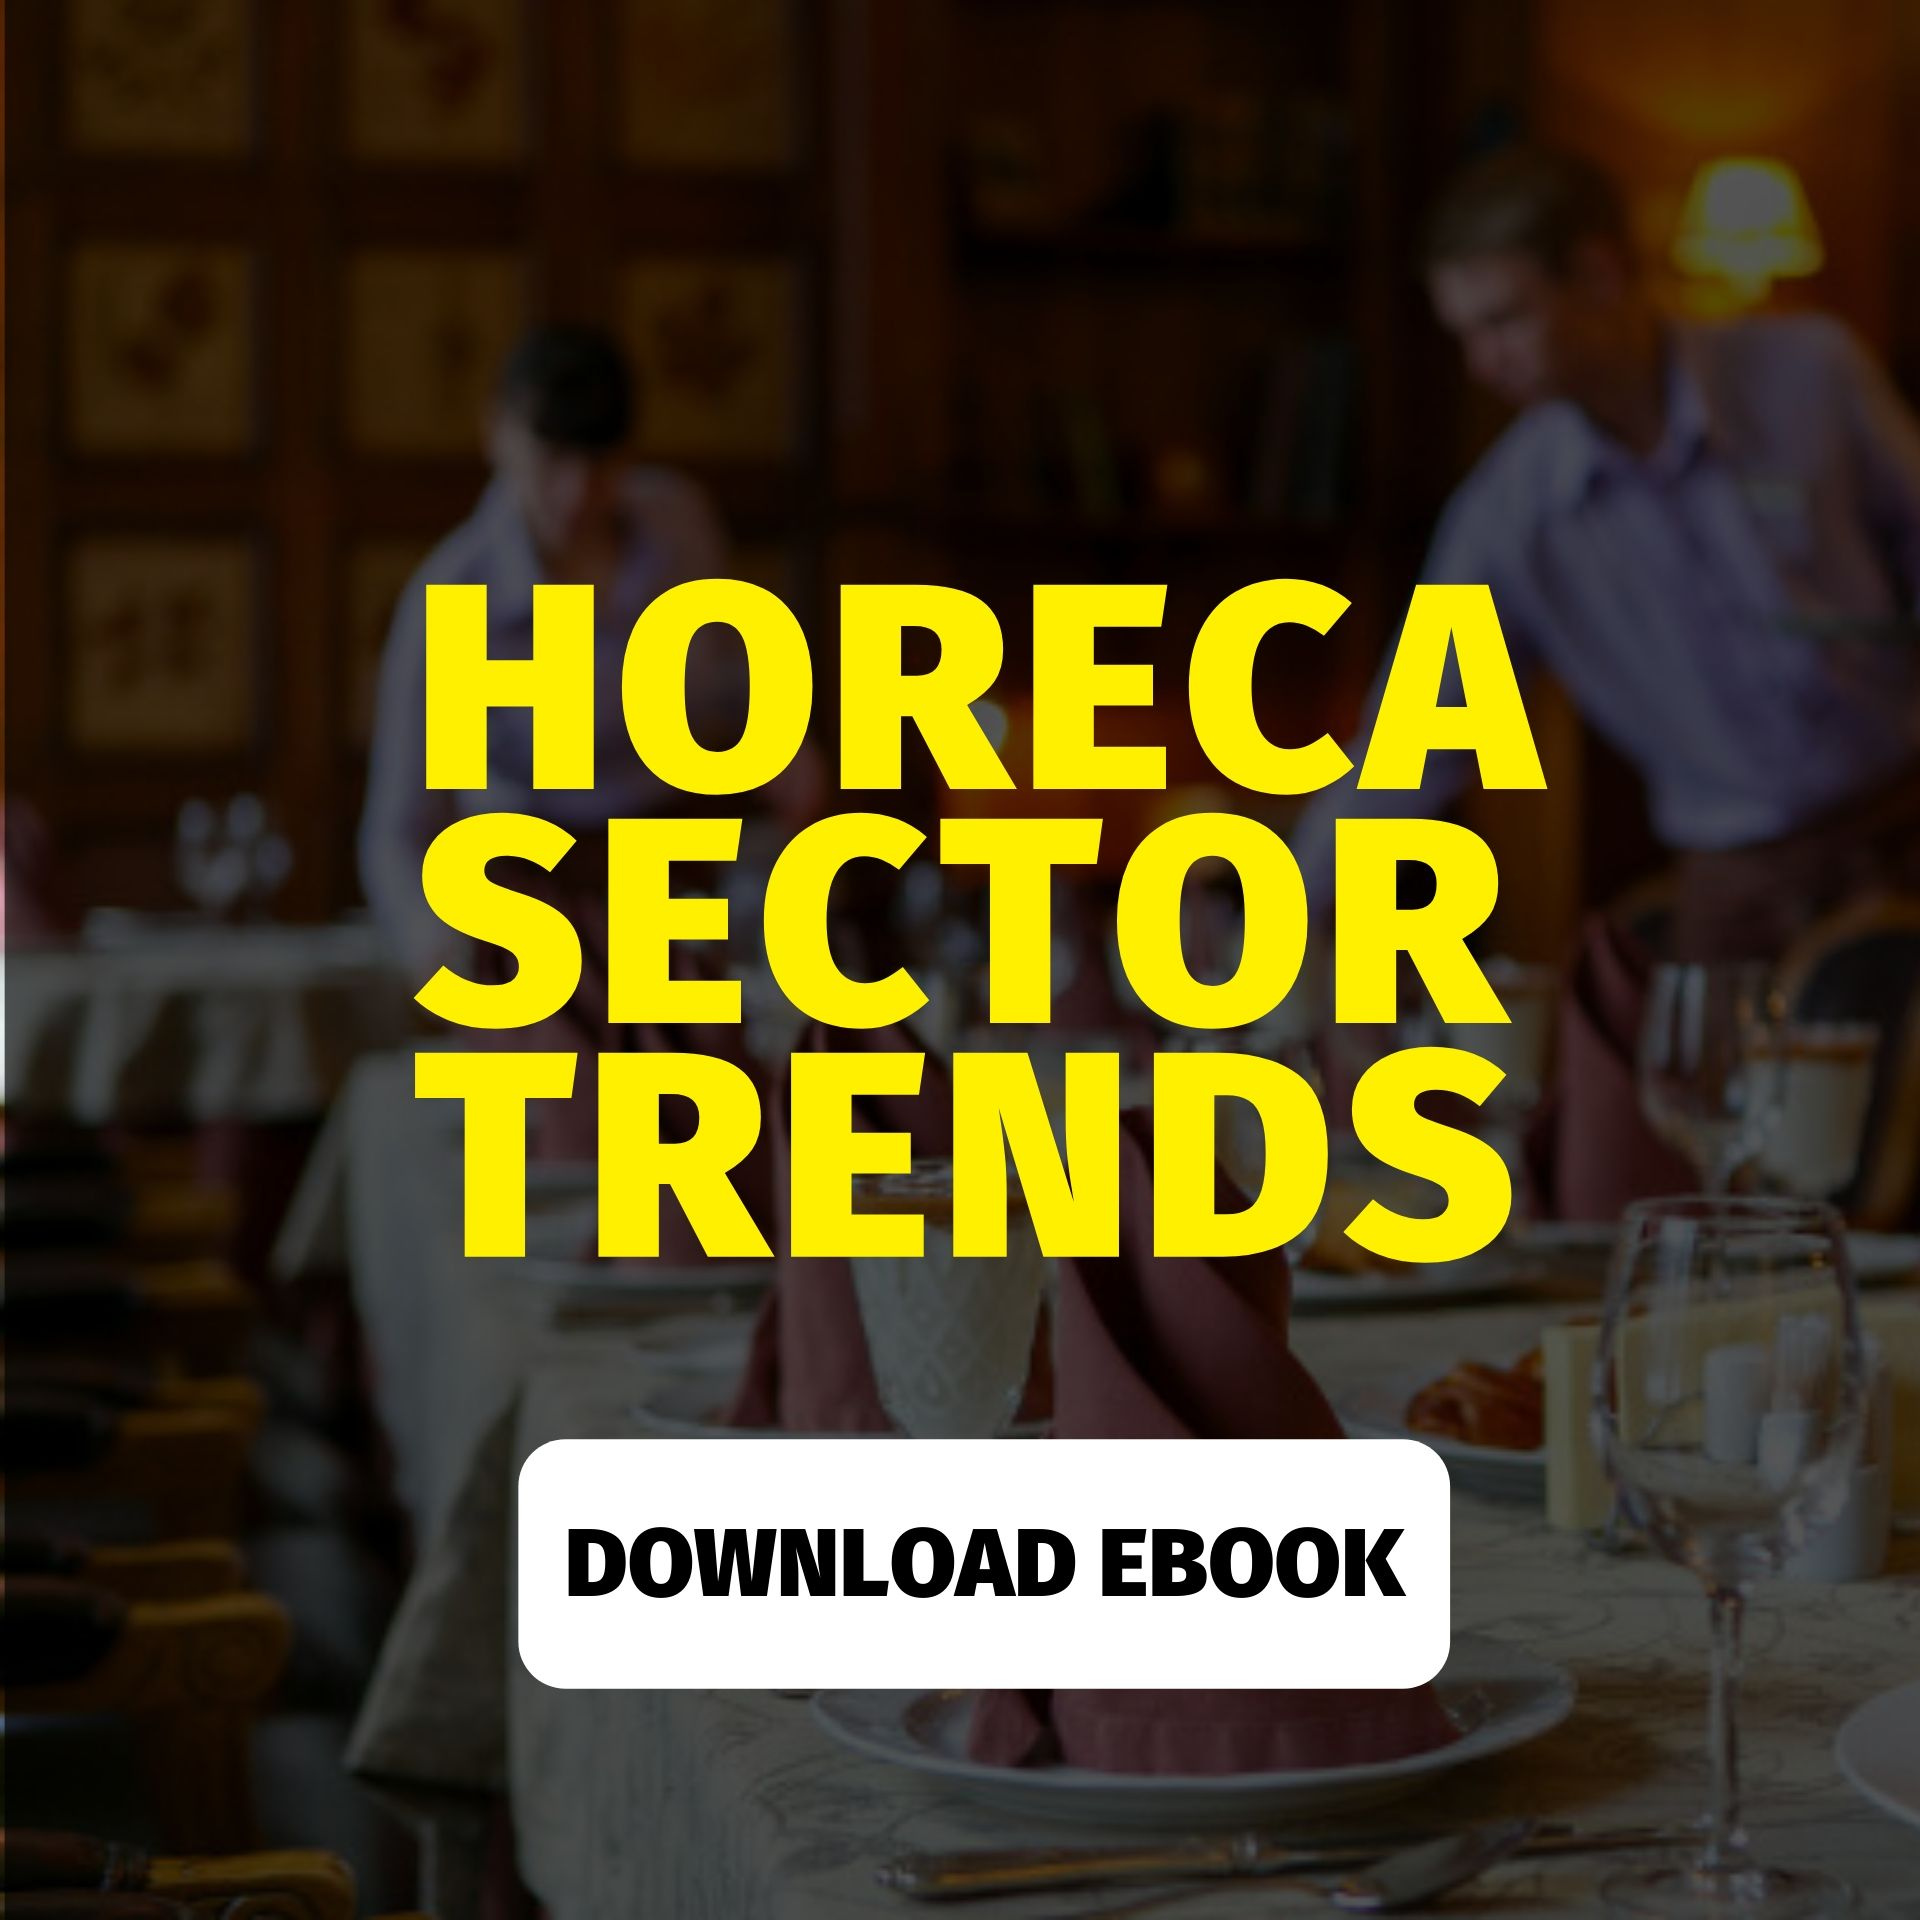 HORECA SECTOR TRENDS